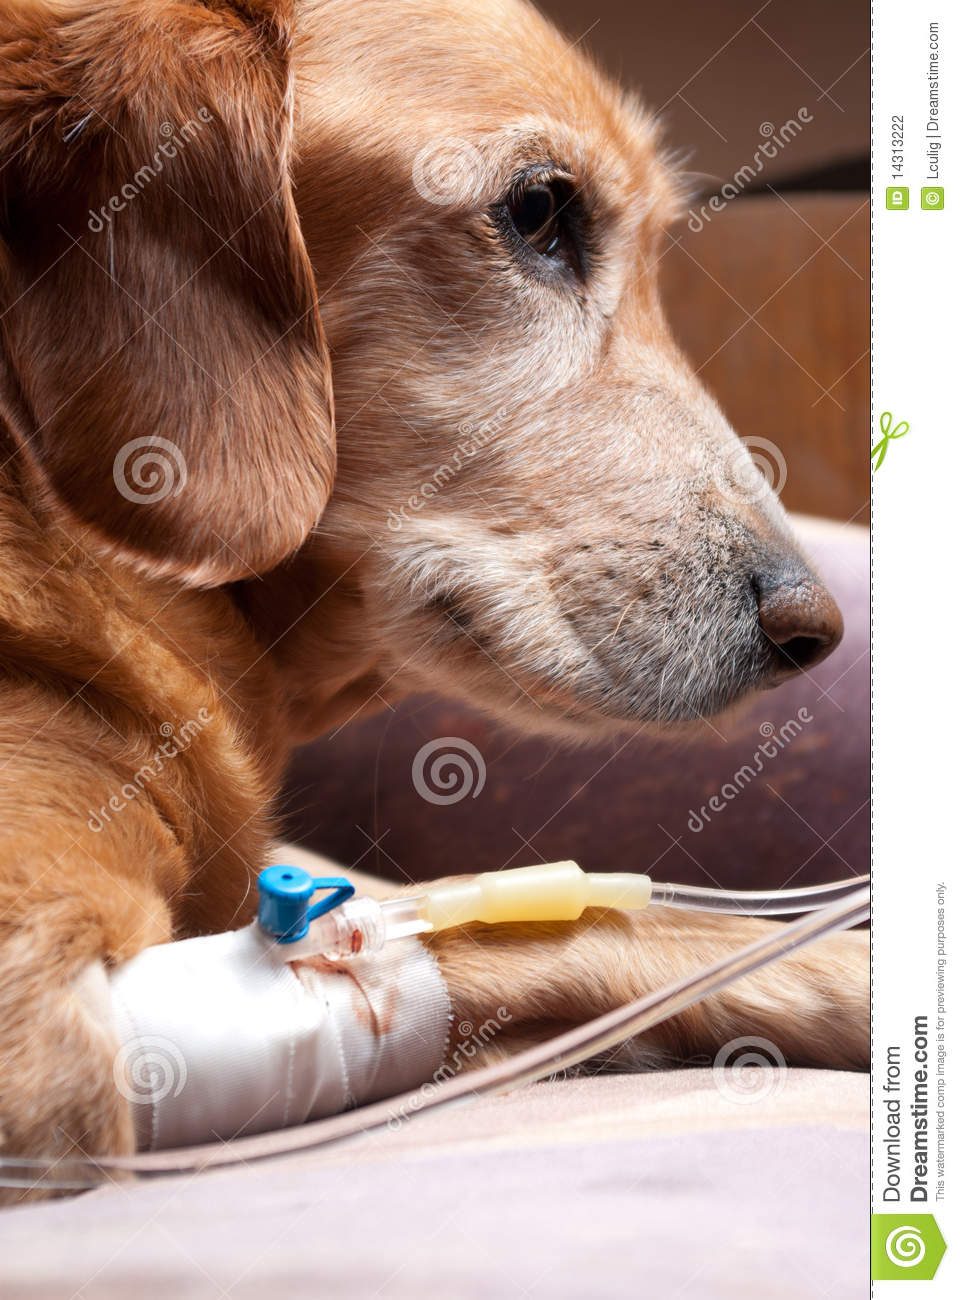 Yellow Sofa Dog Recovering With Cannula Intravenous Therapy Stock